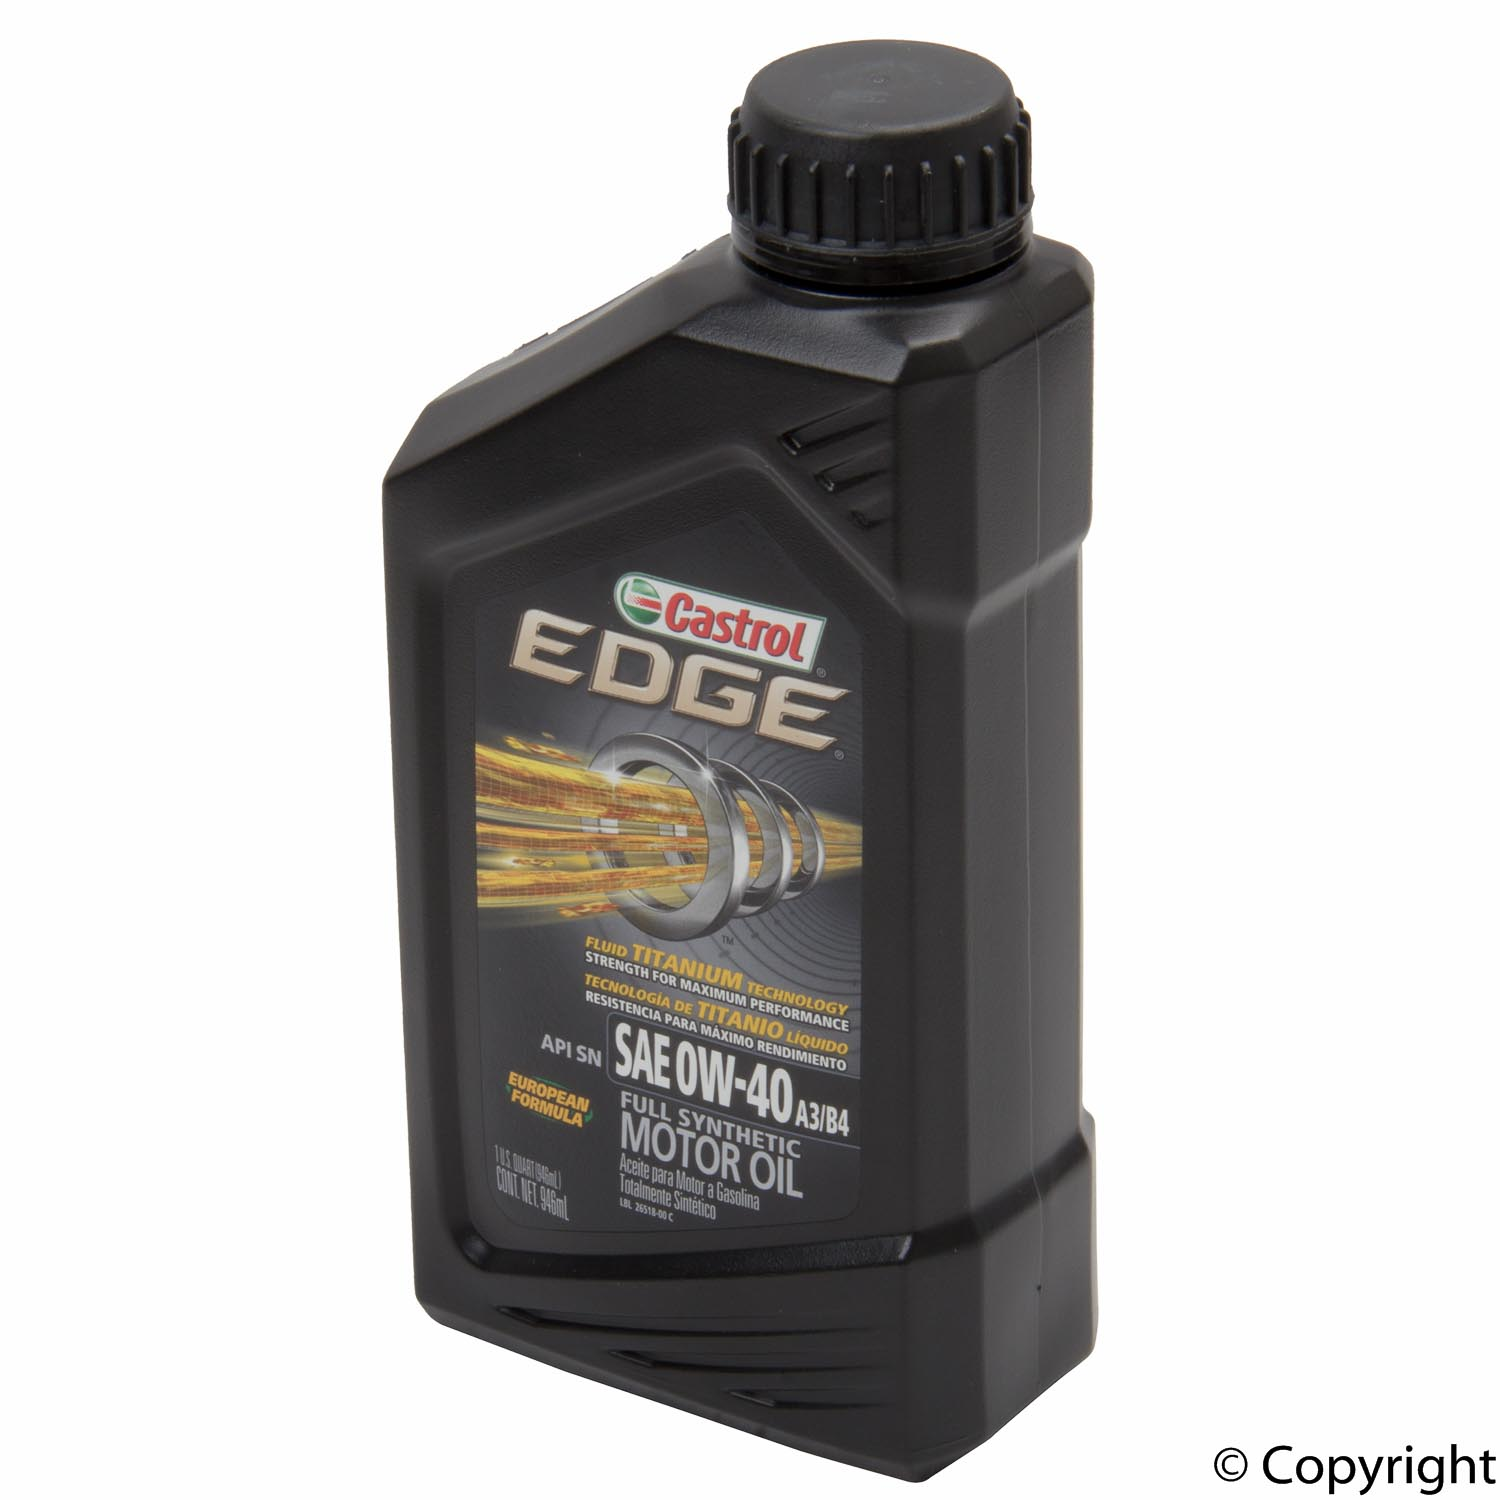 castrol edge 0w 40 full synthetic oil 1qt bottle imparts. Black Bedroom Furniture Sets. Home Design Ideas